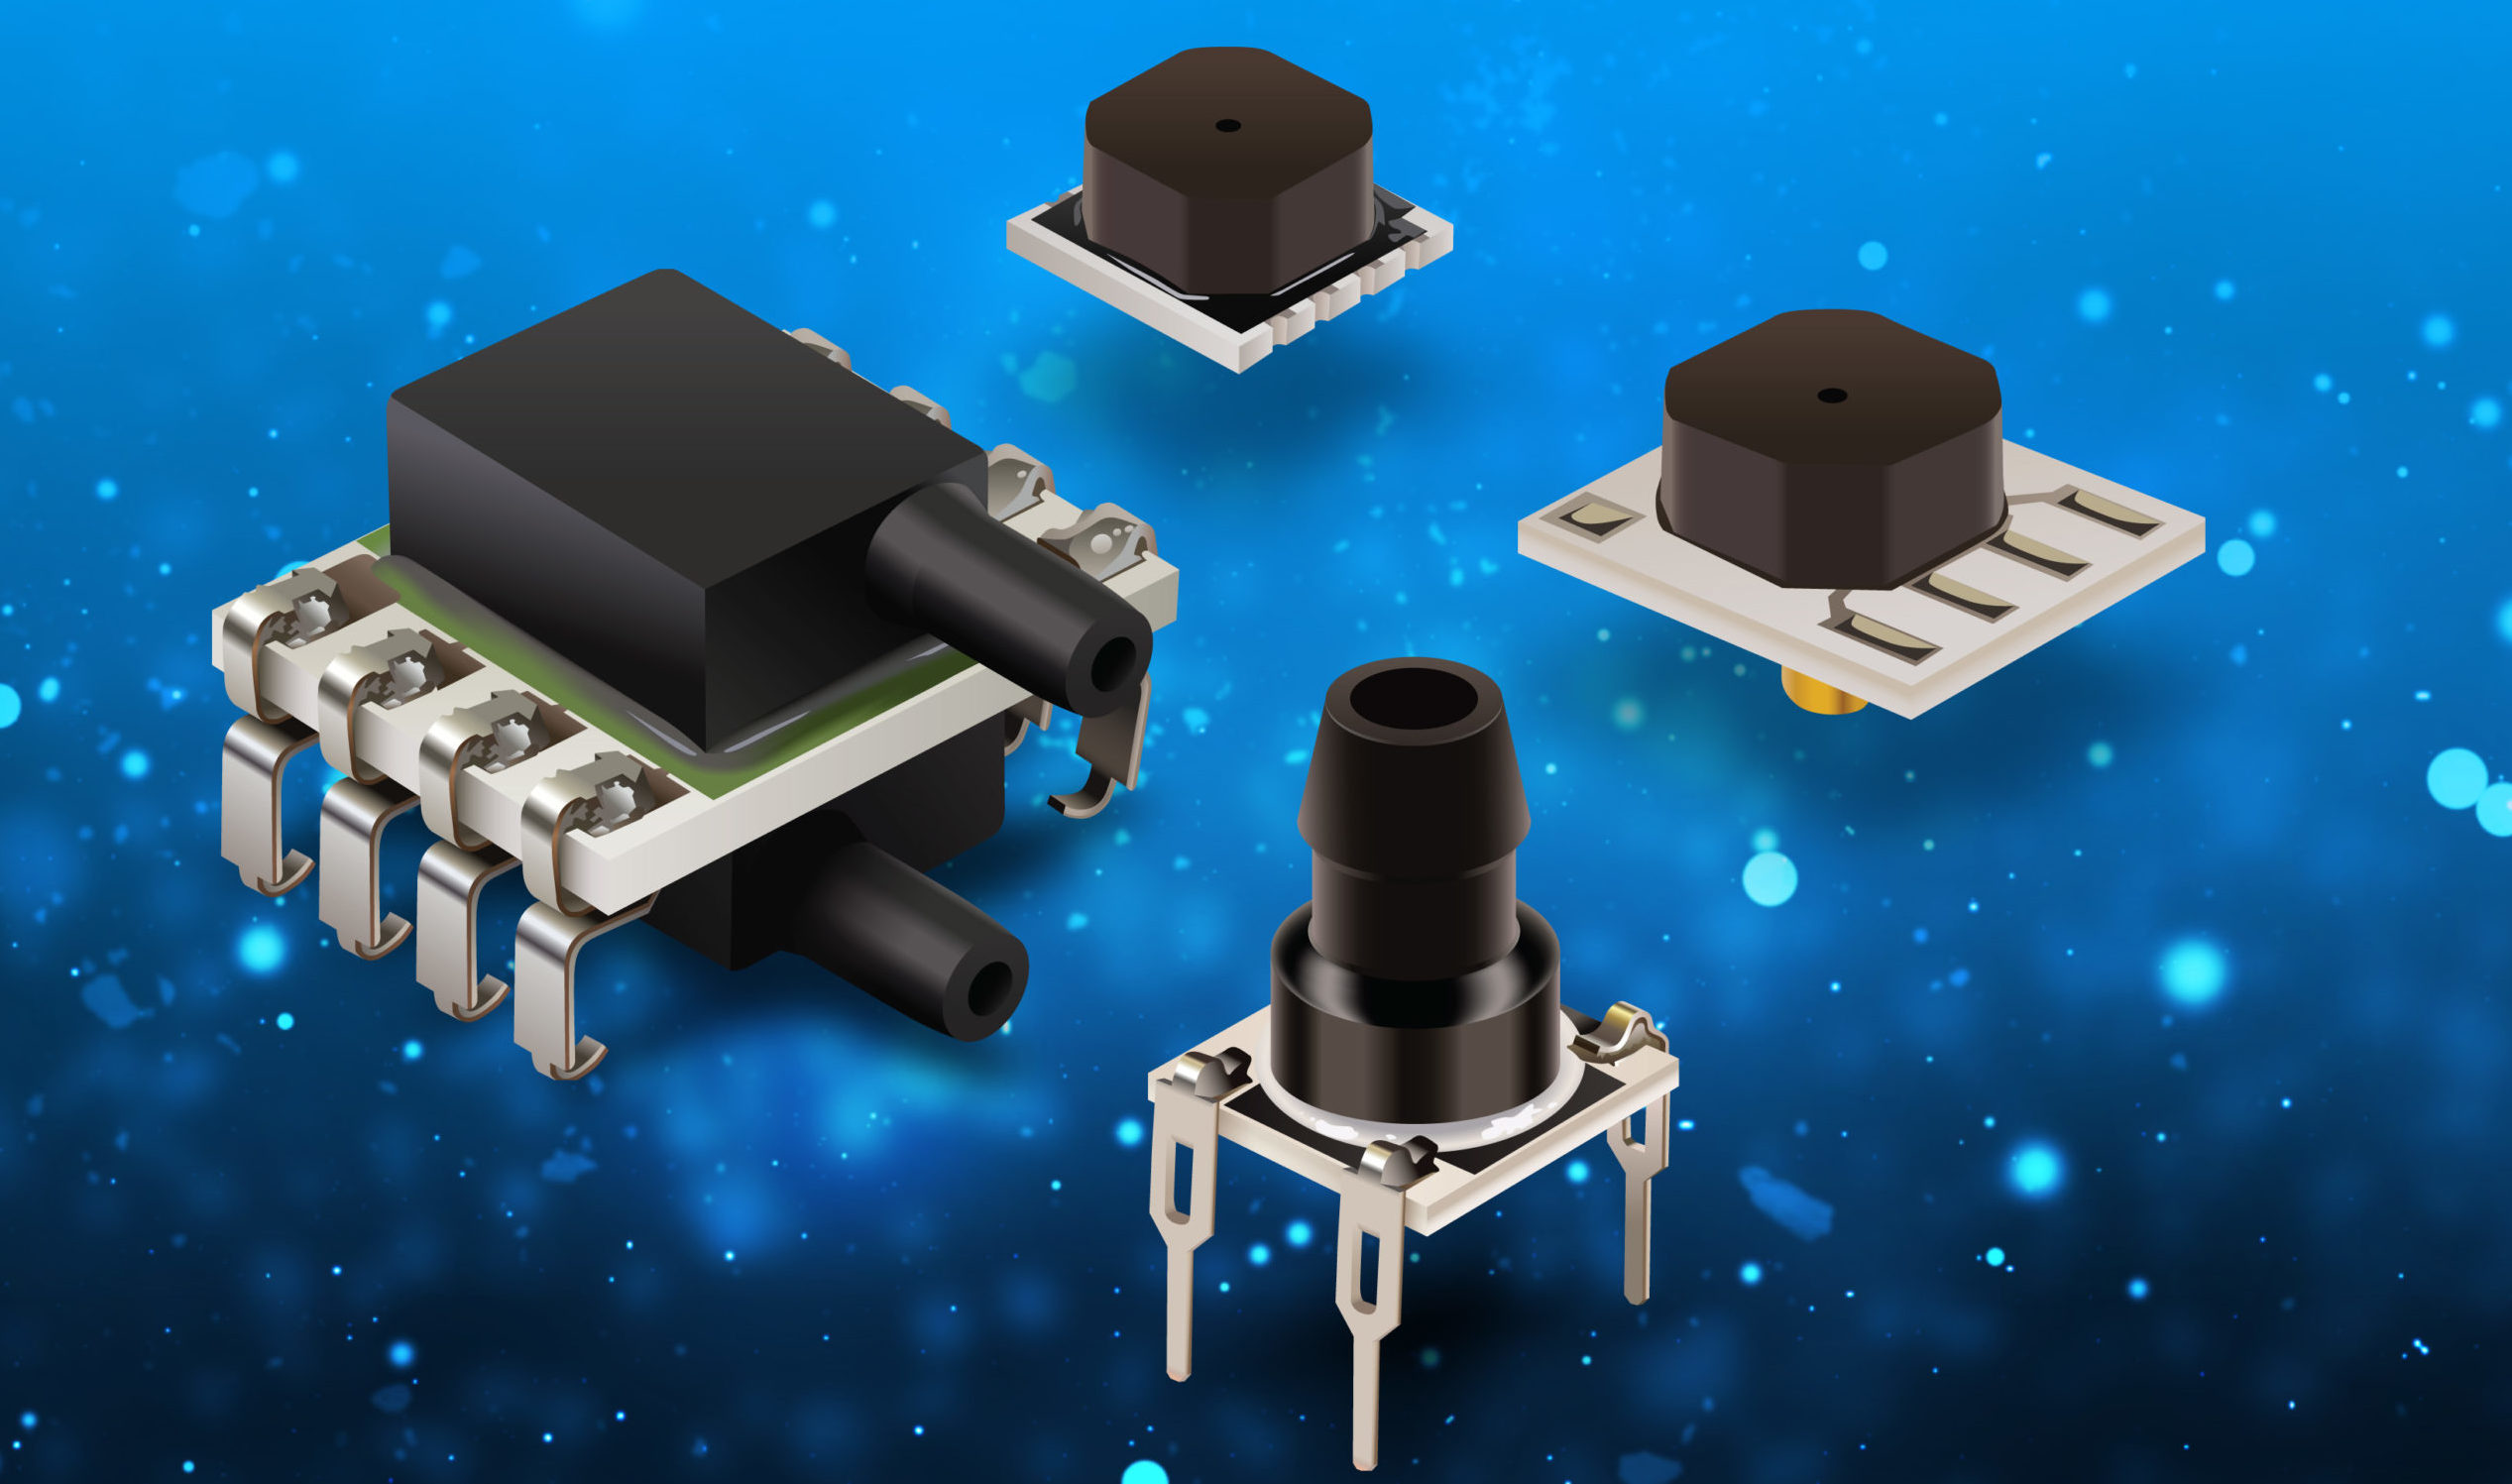 MEMS pressure sensors feature fast response, high resolution, long-term stability